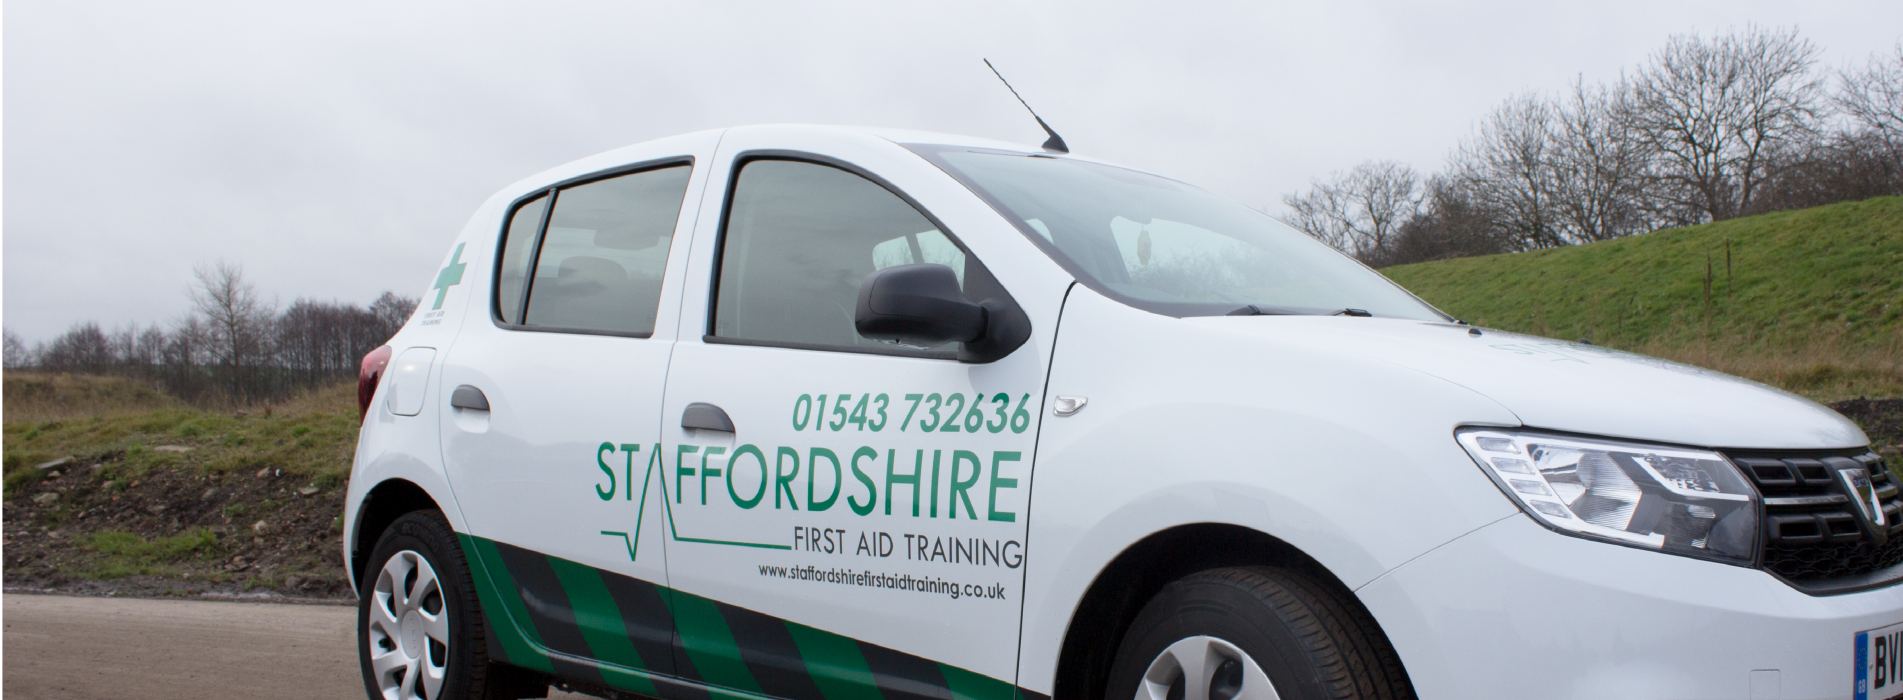 ashby-de-la-zouch first aid training